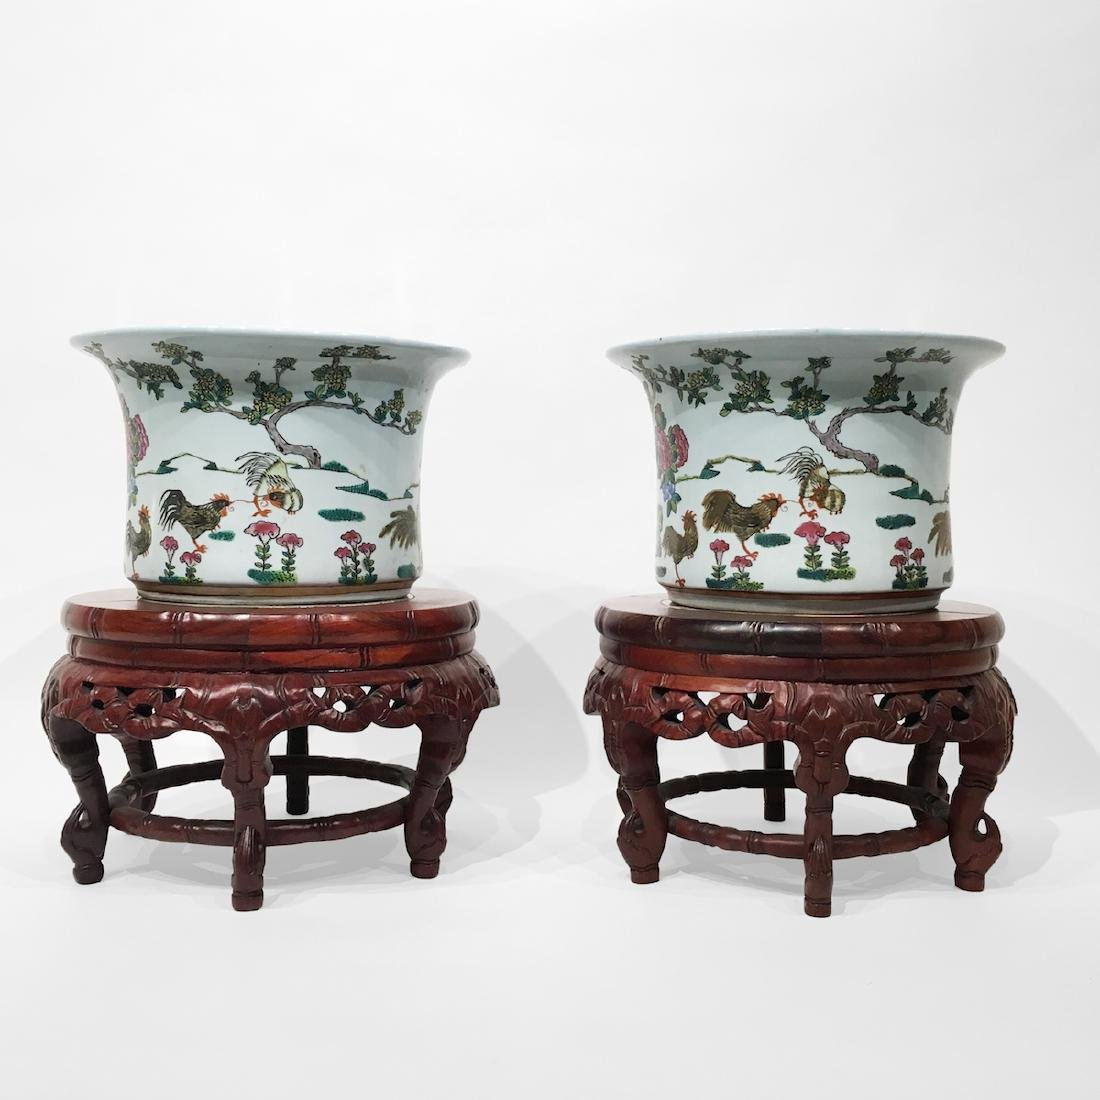 2 Chinese Planters w/ wood and marble stands.